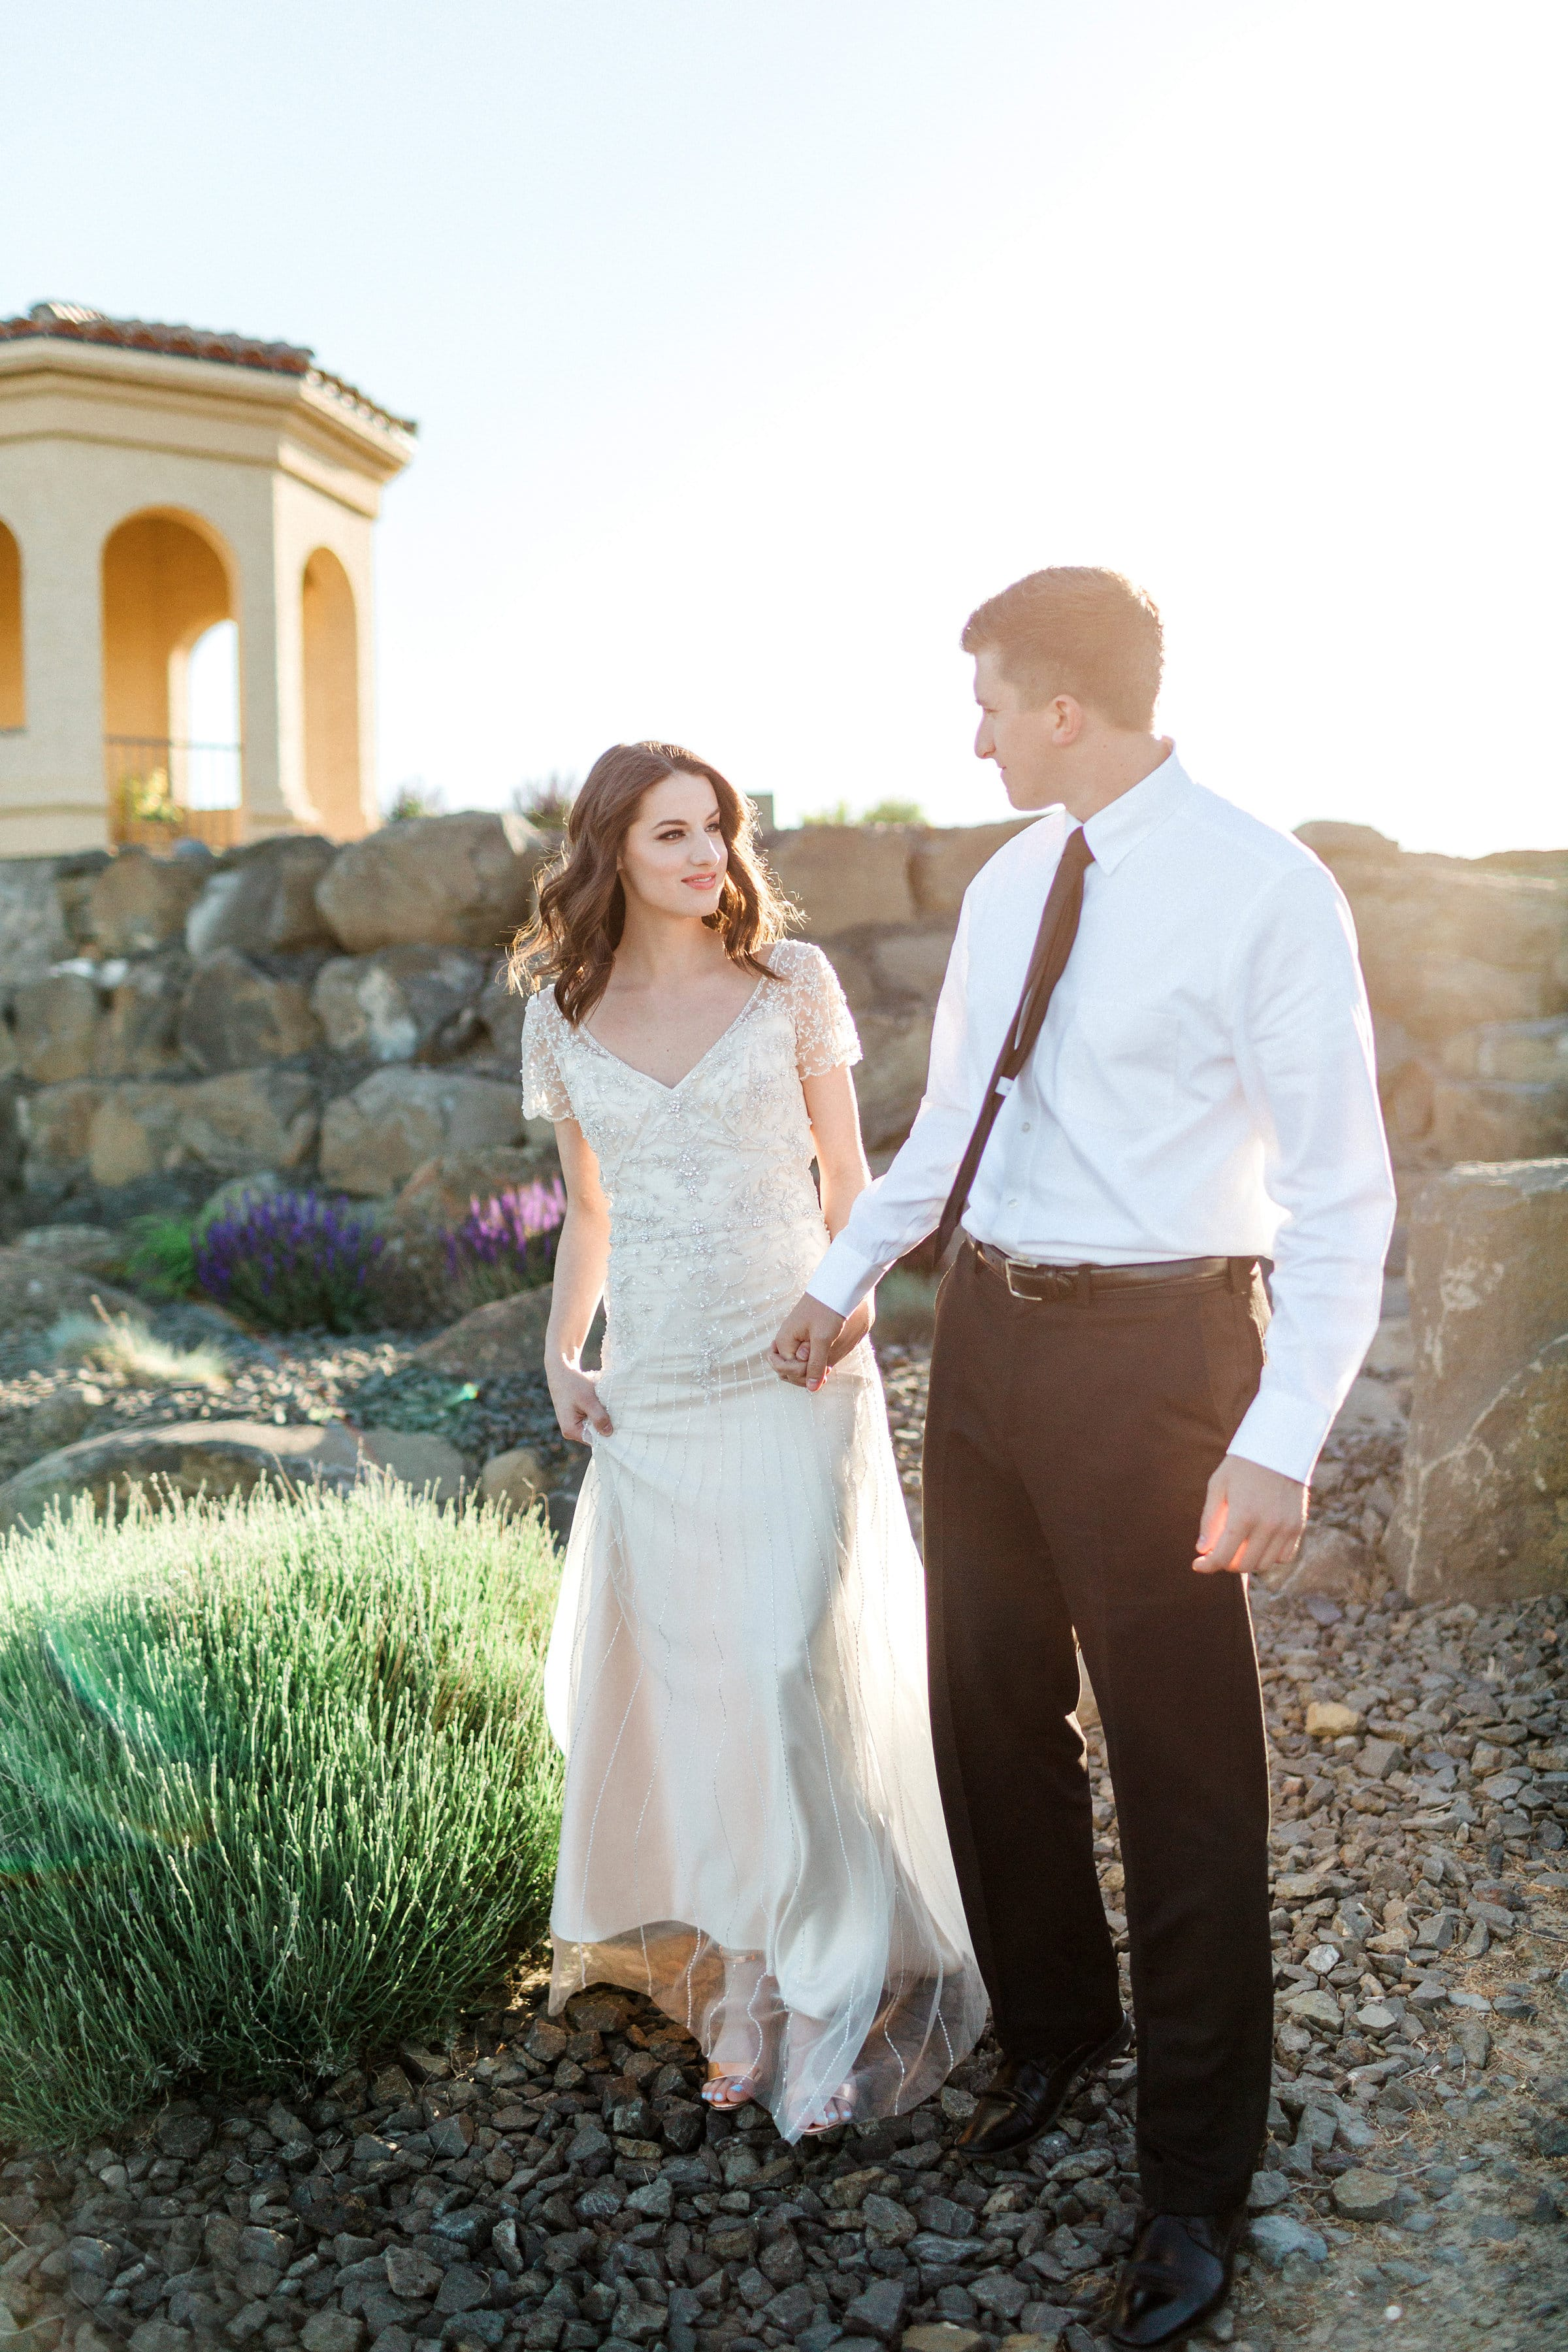 Vintage-Inspired Wedding Gown in Dreamy Styled Shoot